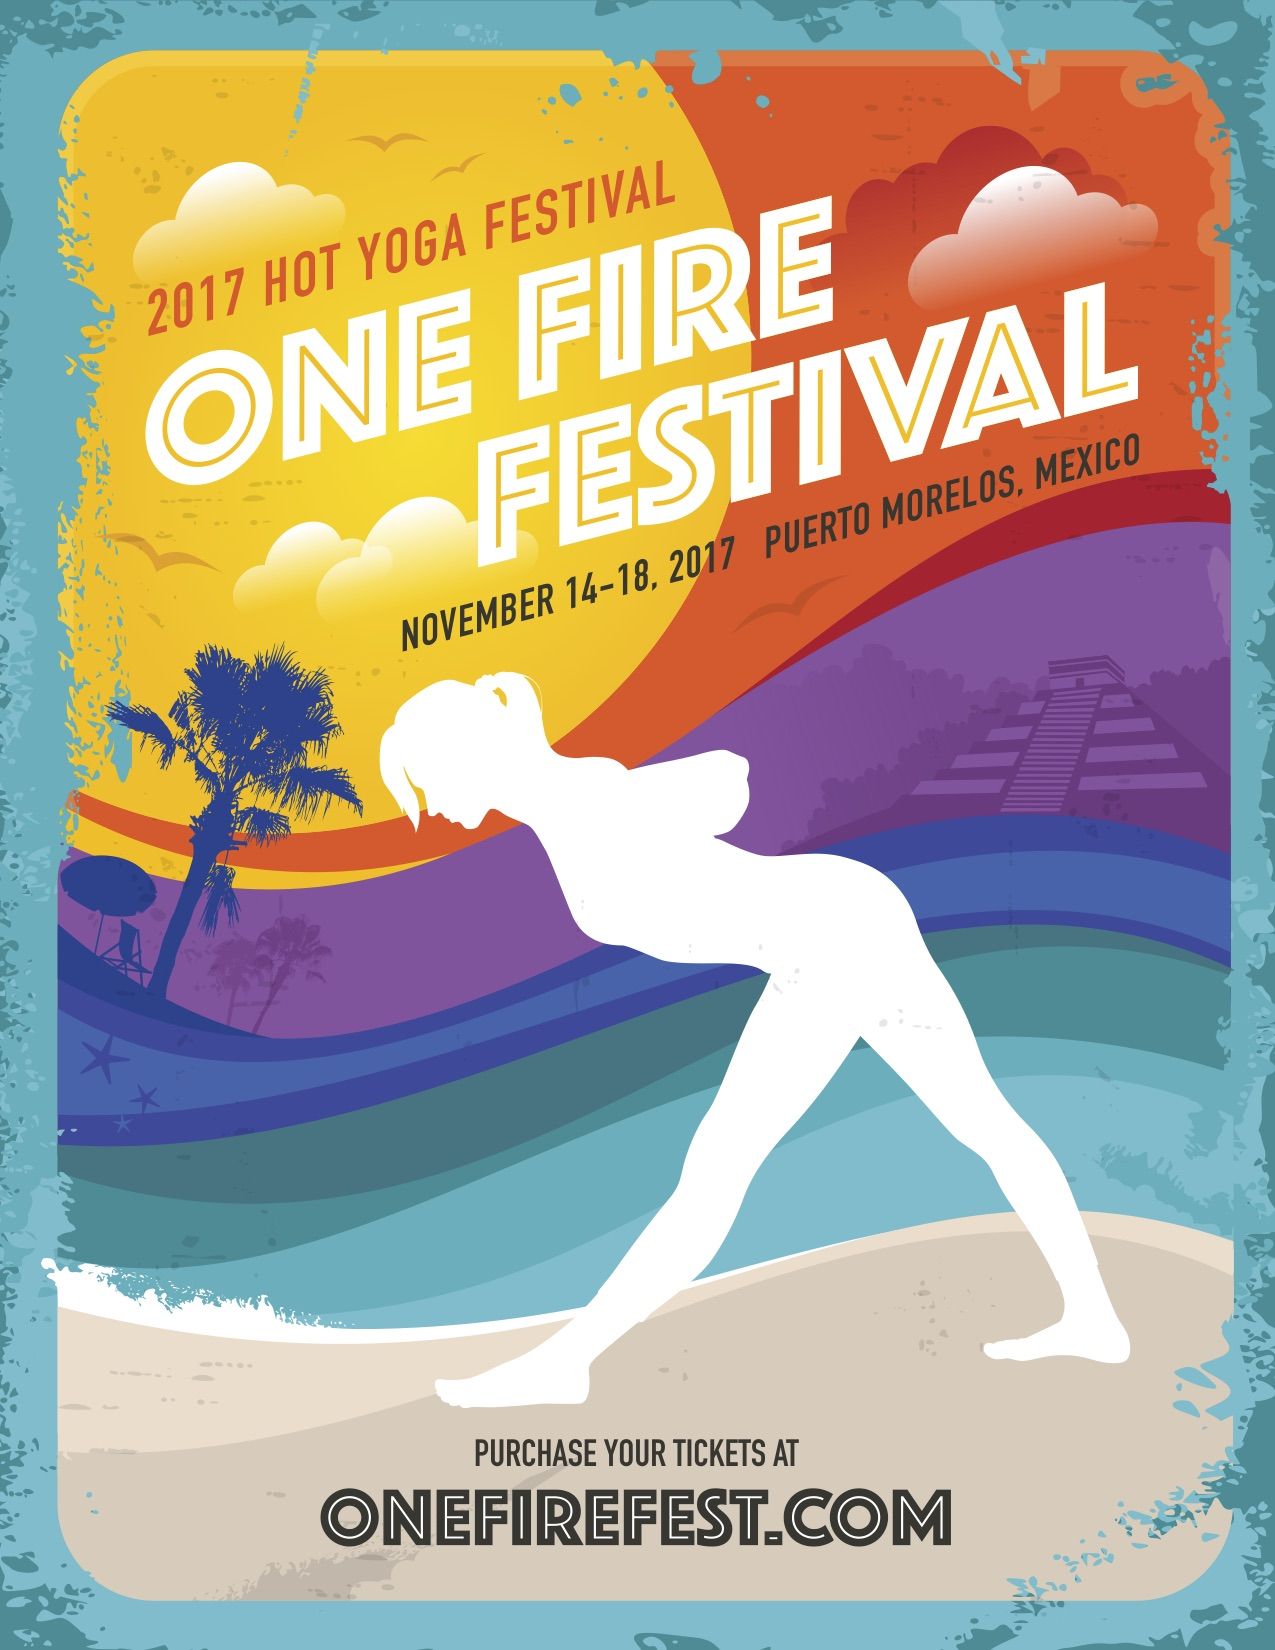 ONE FIRE HOT YOGA FESTIVAL - One Fire Fest is a hot yoga immersion: part-retreat, part-learning lab, part-all out party. It's also a transformative and inspiring experience for hot yoga lovers from all over the world. The One Fire experience includes classes, workshops, adventures, music, excursions, and healing arts.We'll be there as presenters running  2 workshops: Back to Basics (continuing education for hot yoga teachers) and a Yoga Business talk on best practices for selling in the yoga industry.November 14-18Click here to meet us there!